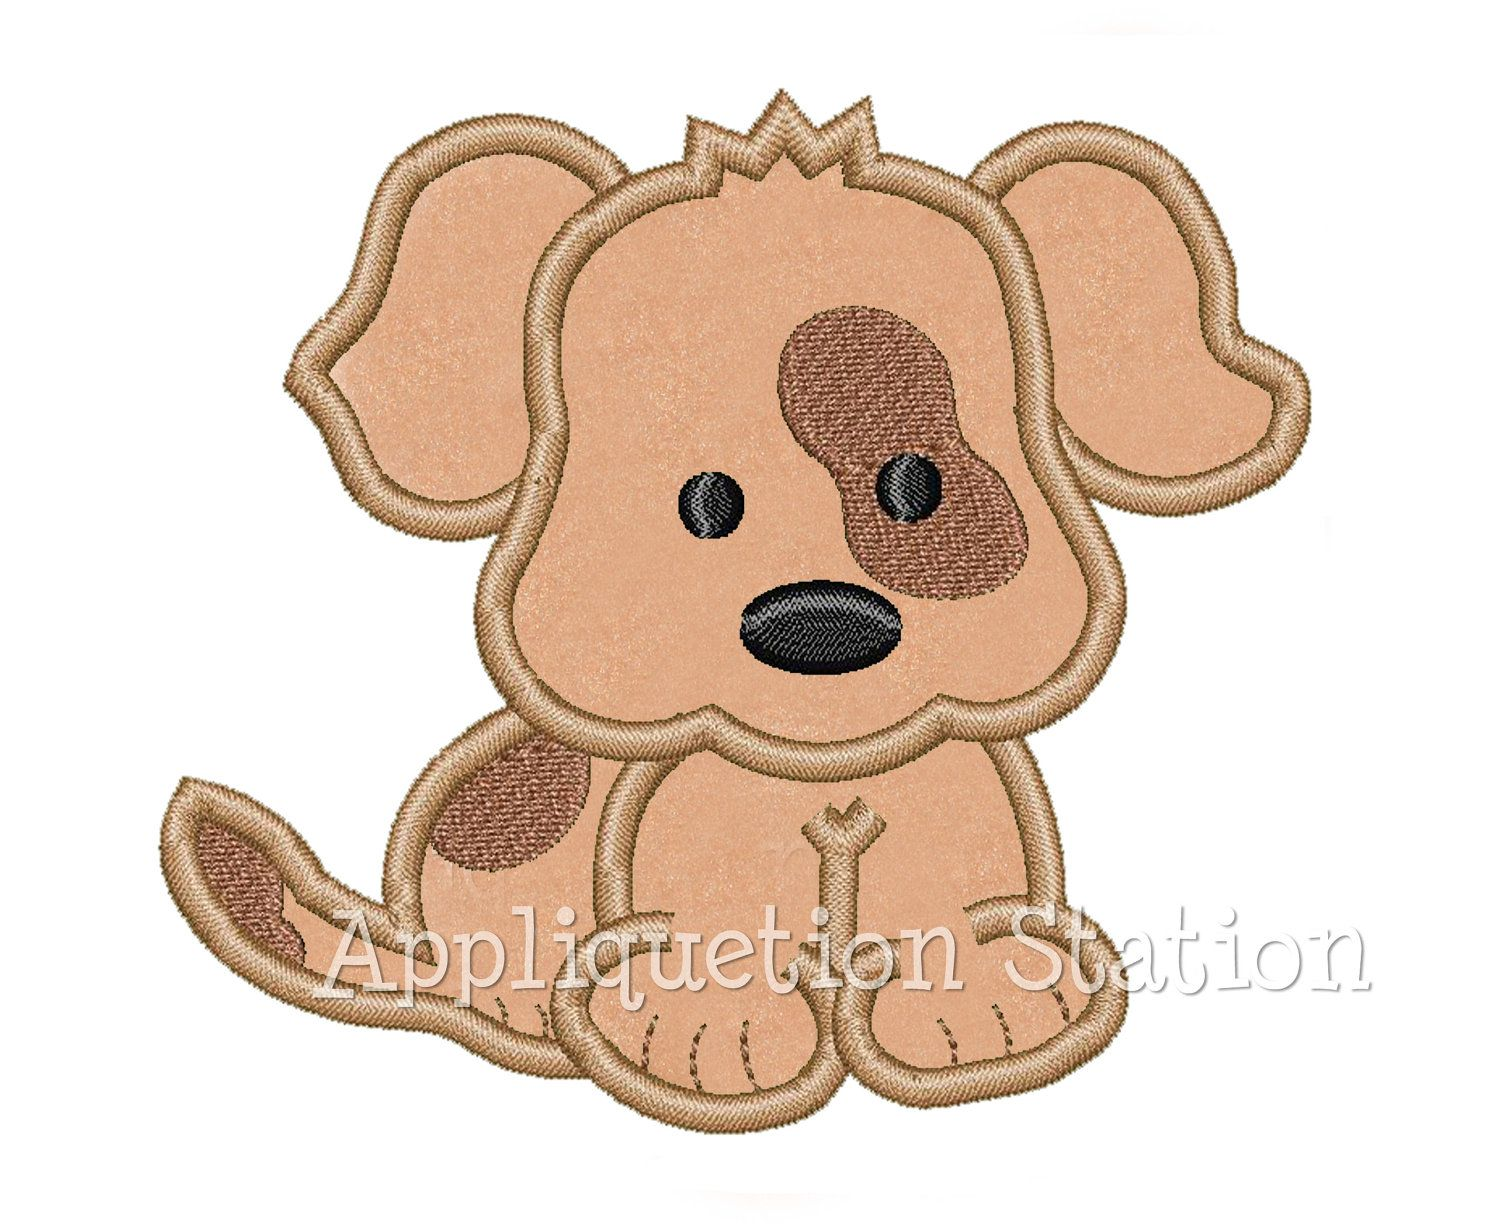 Applique Baby Puppy Dog Patch Over Eye Spot Applique Machine